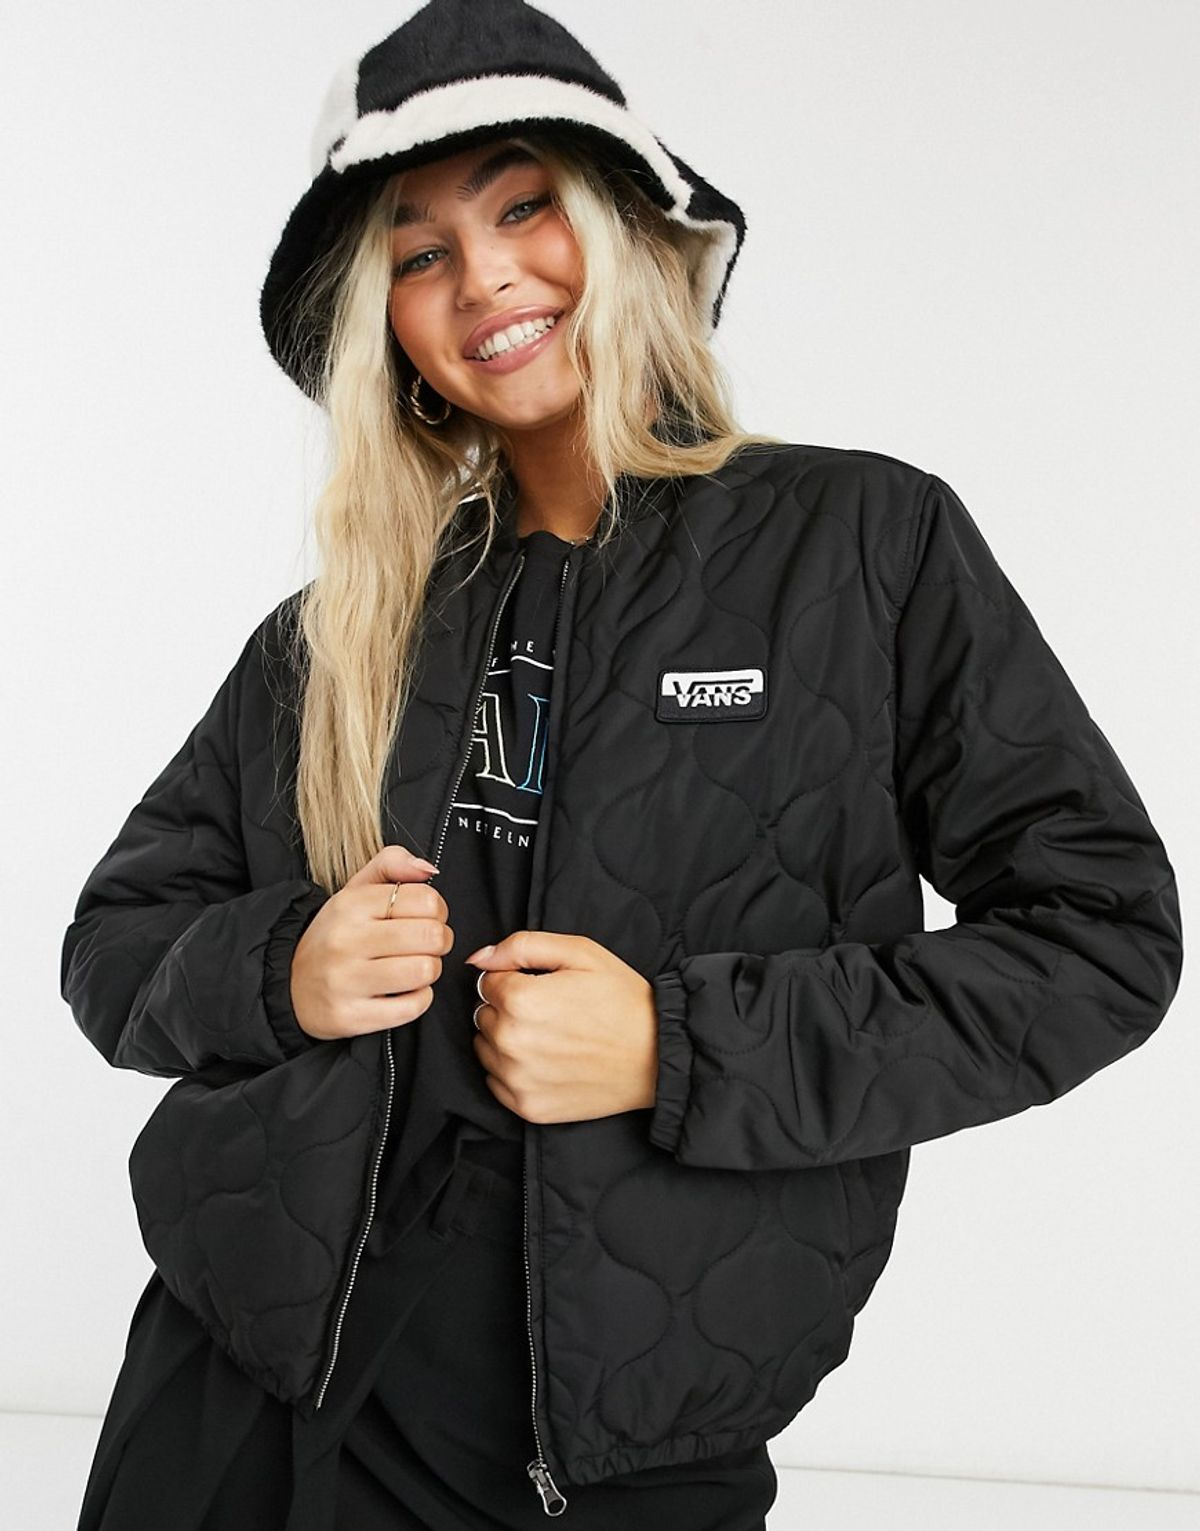 Vans Boom Boom Vi Bomber Jacket In Black   WHAT'S ON THE STAR?